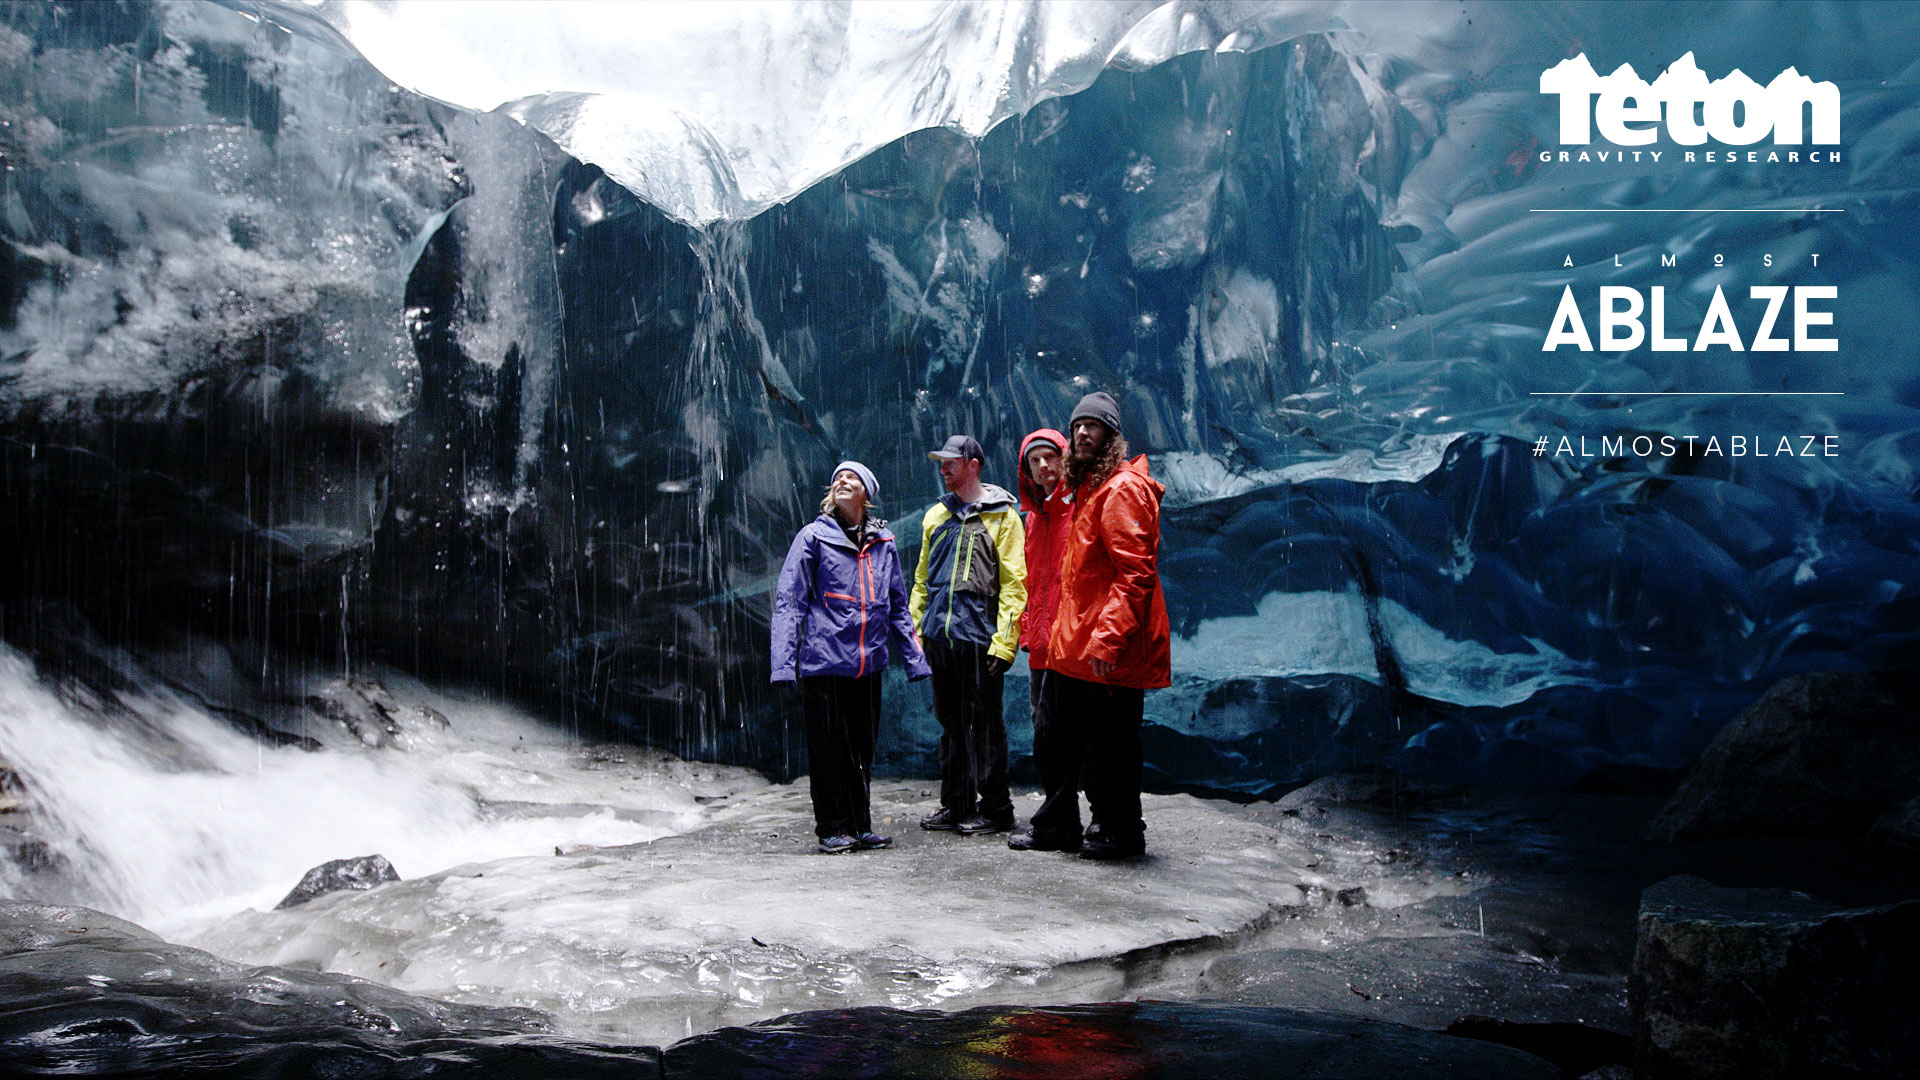 The 'Almost Ablaze' crew in an ice cave.